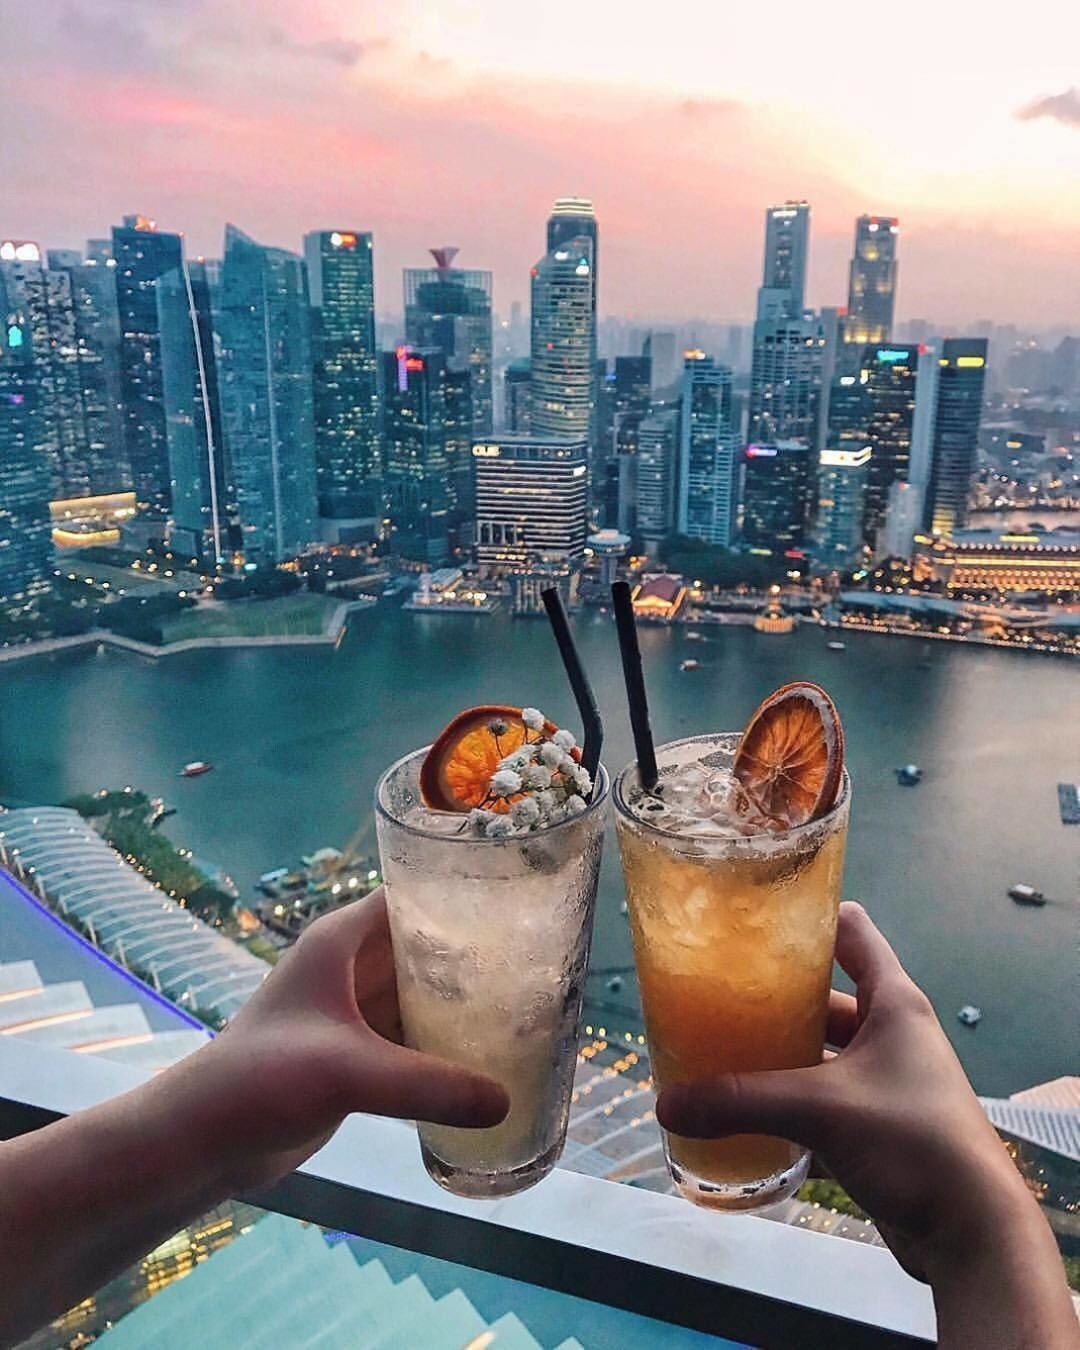 Only Luxury Hotels On Instagram Cheers To The Weekend Would You Stay Here Marina Bay Singapore Things To Do Singapore Hotels Travel Photography